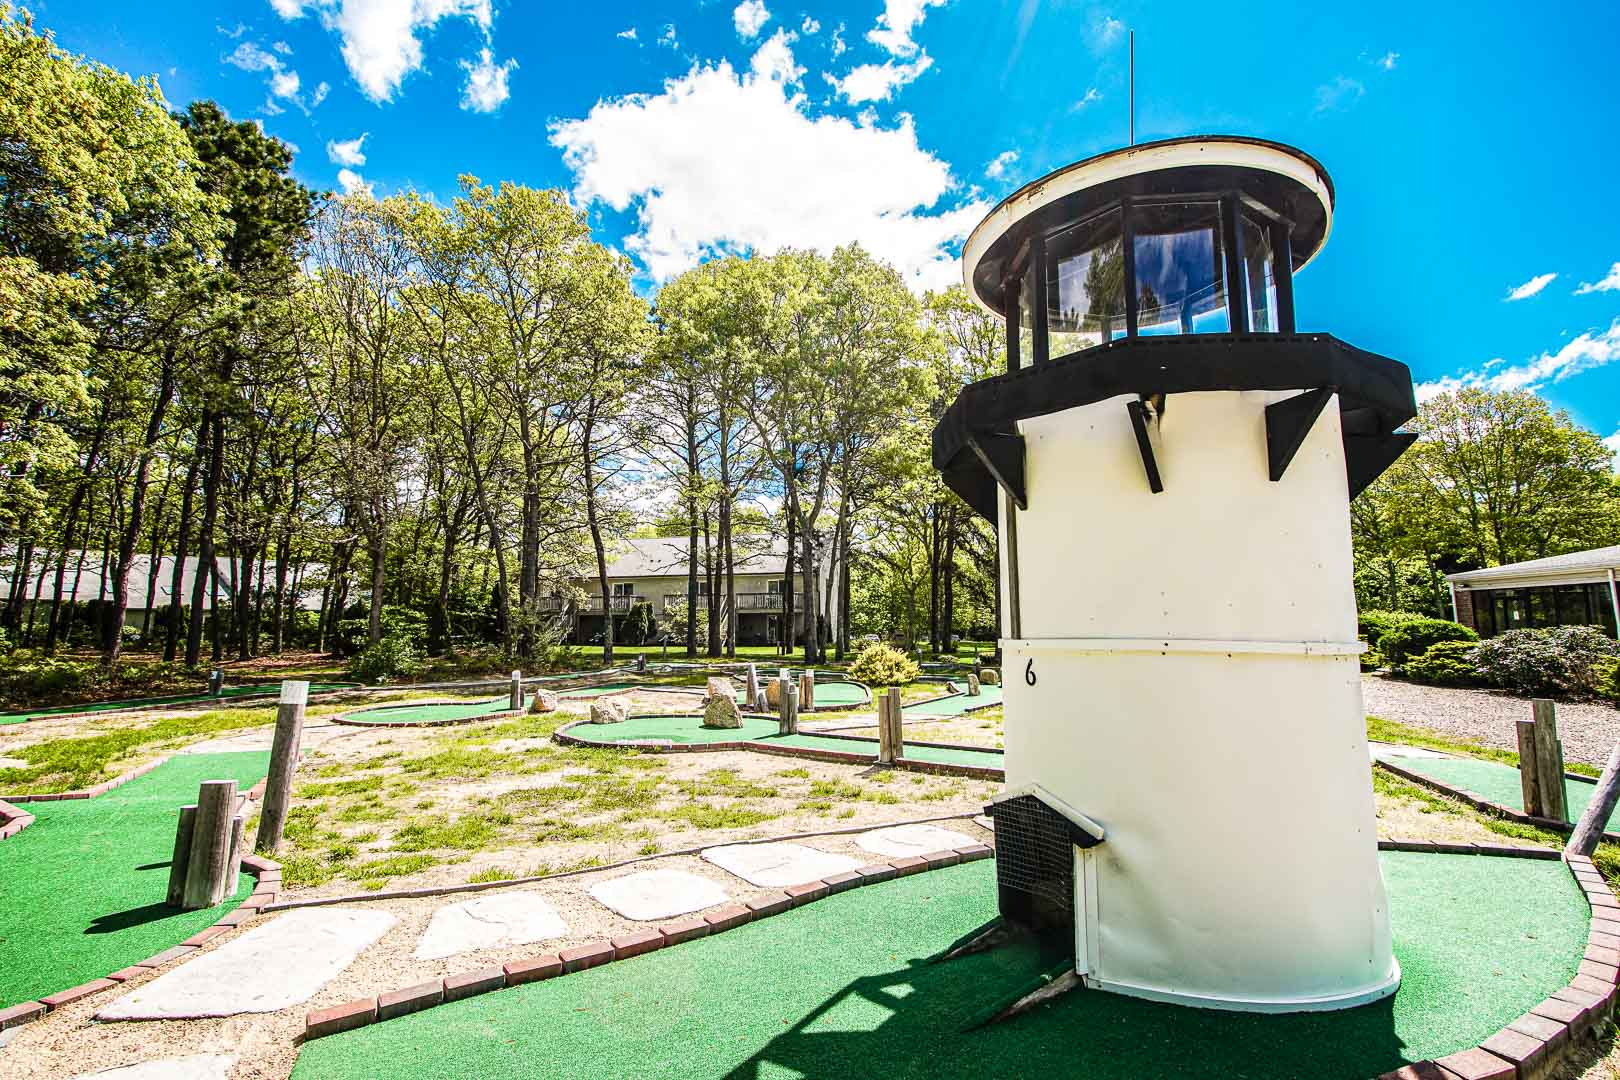 Outside miniature golf amenity at VRI's Sea Mist Resort in Massachusetts.